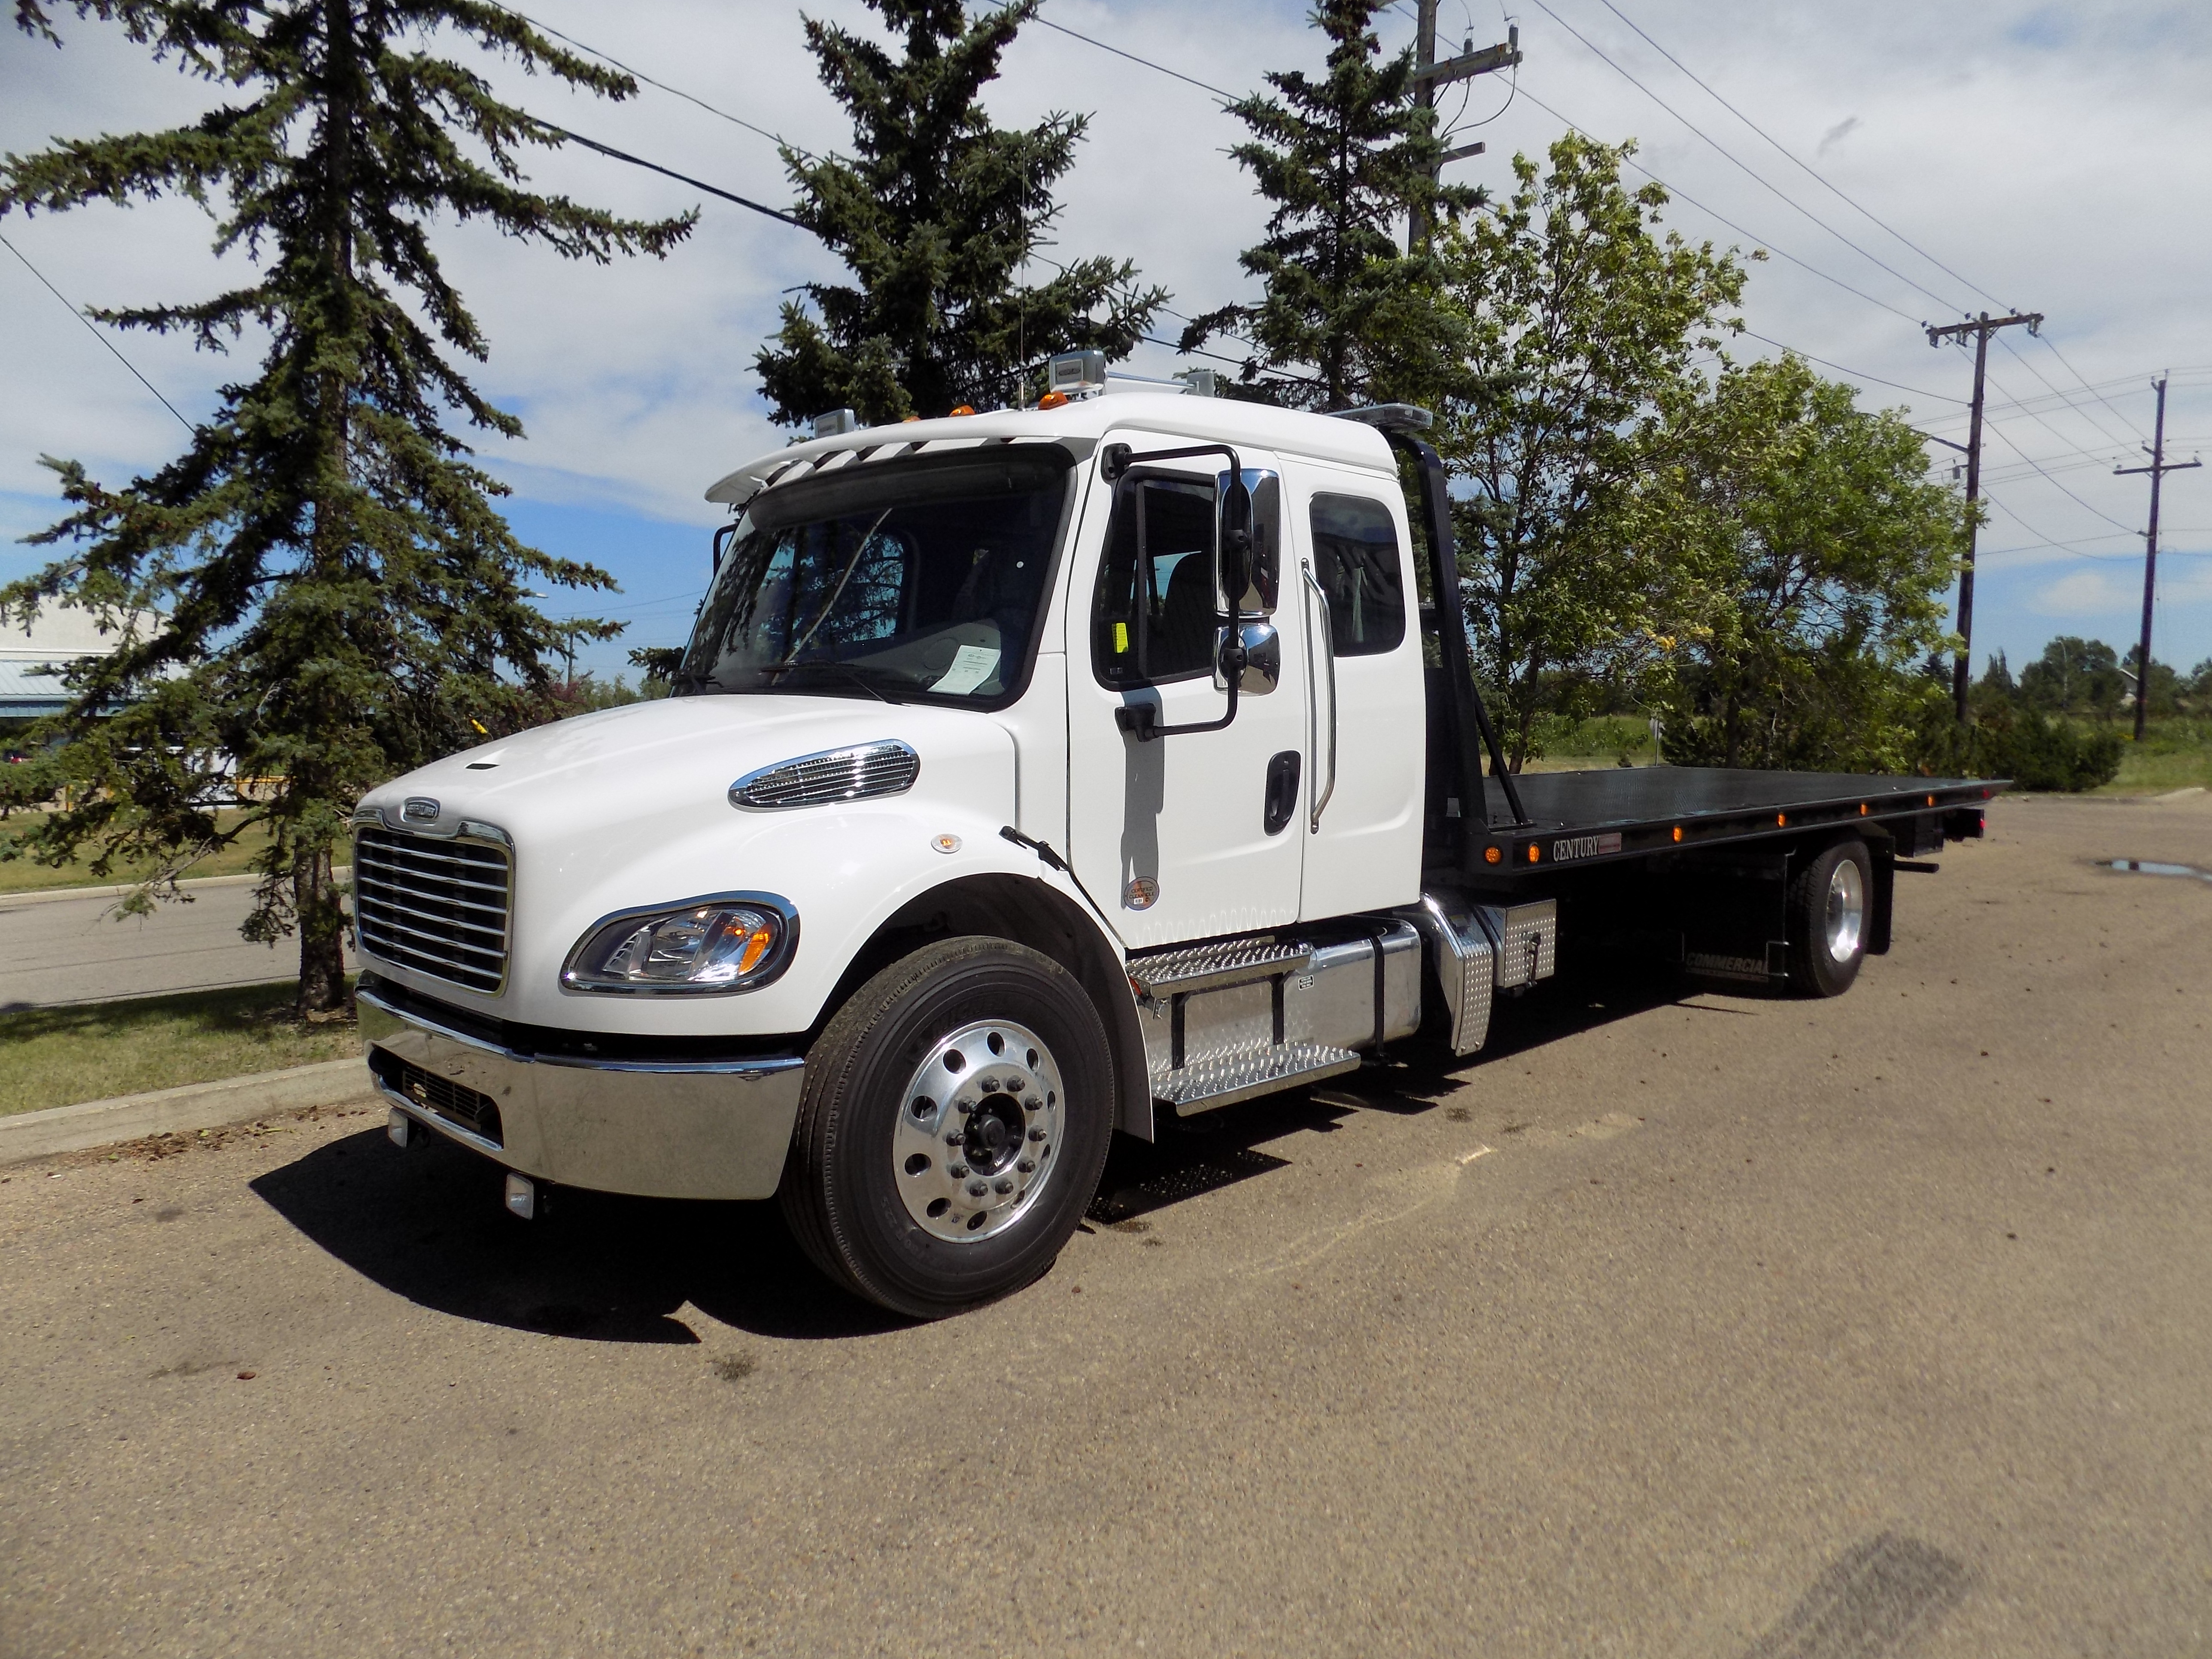 Tow Truck Calgary >> Century 16 Series 23' LCG on Freightliner M2 106 - Commercial Truck Equipment